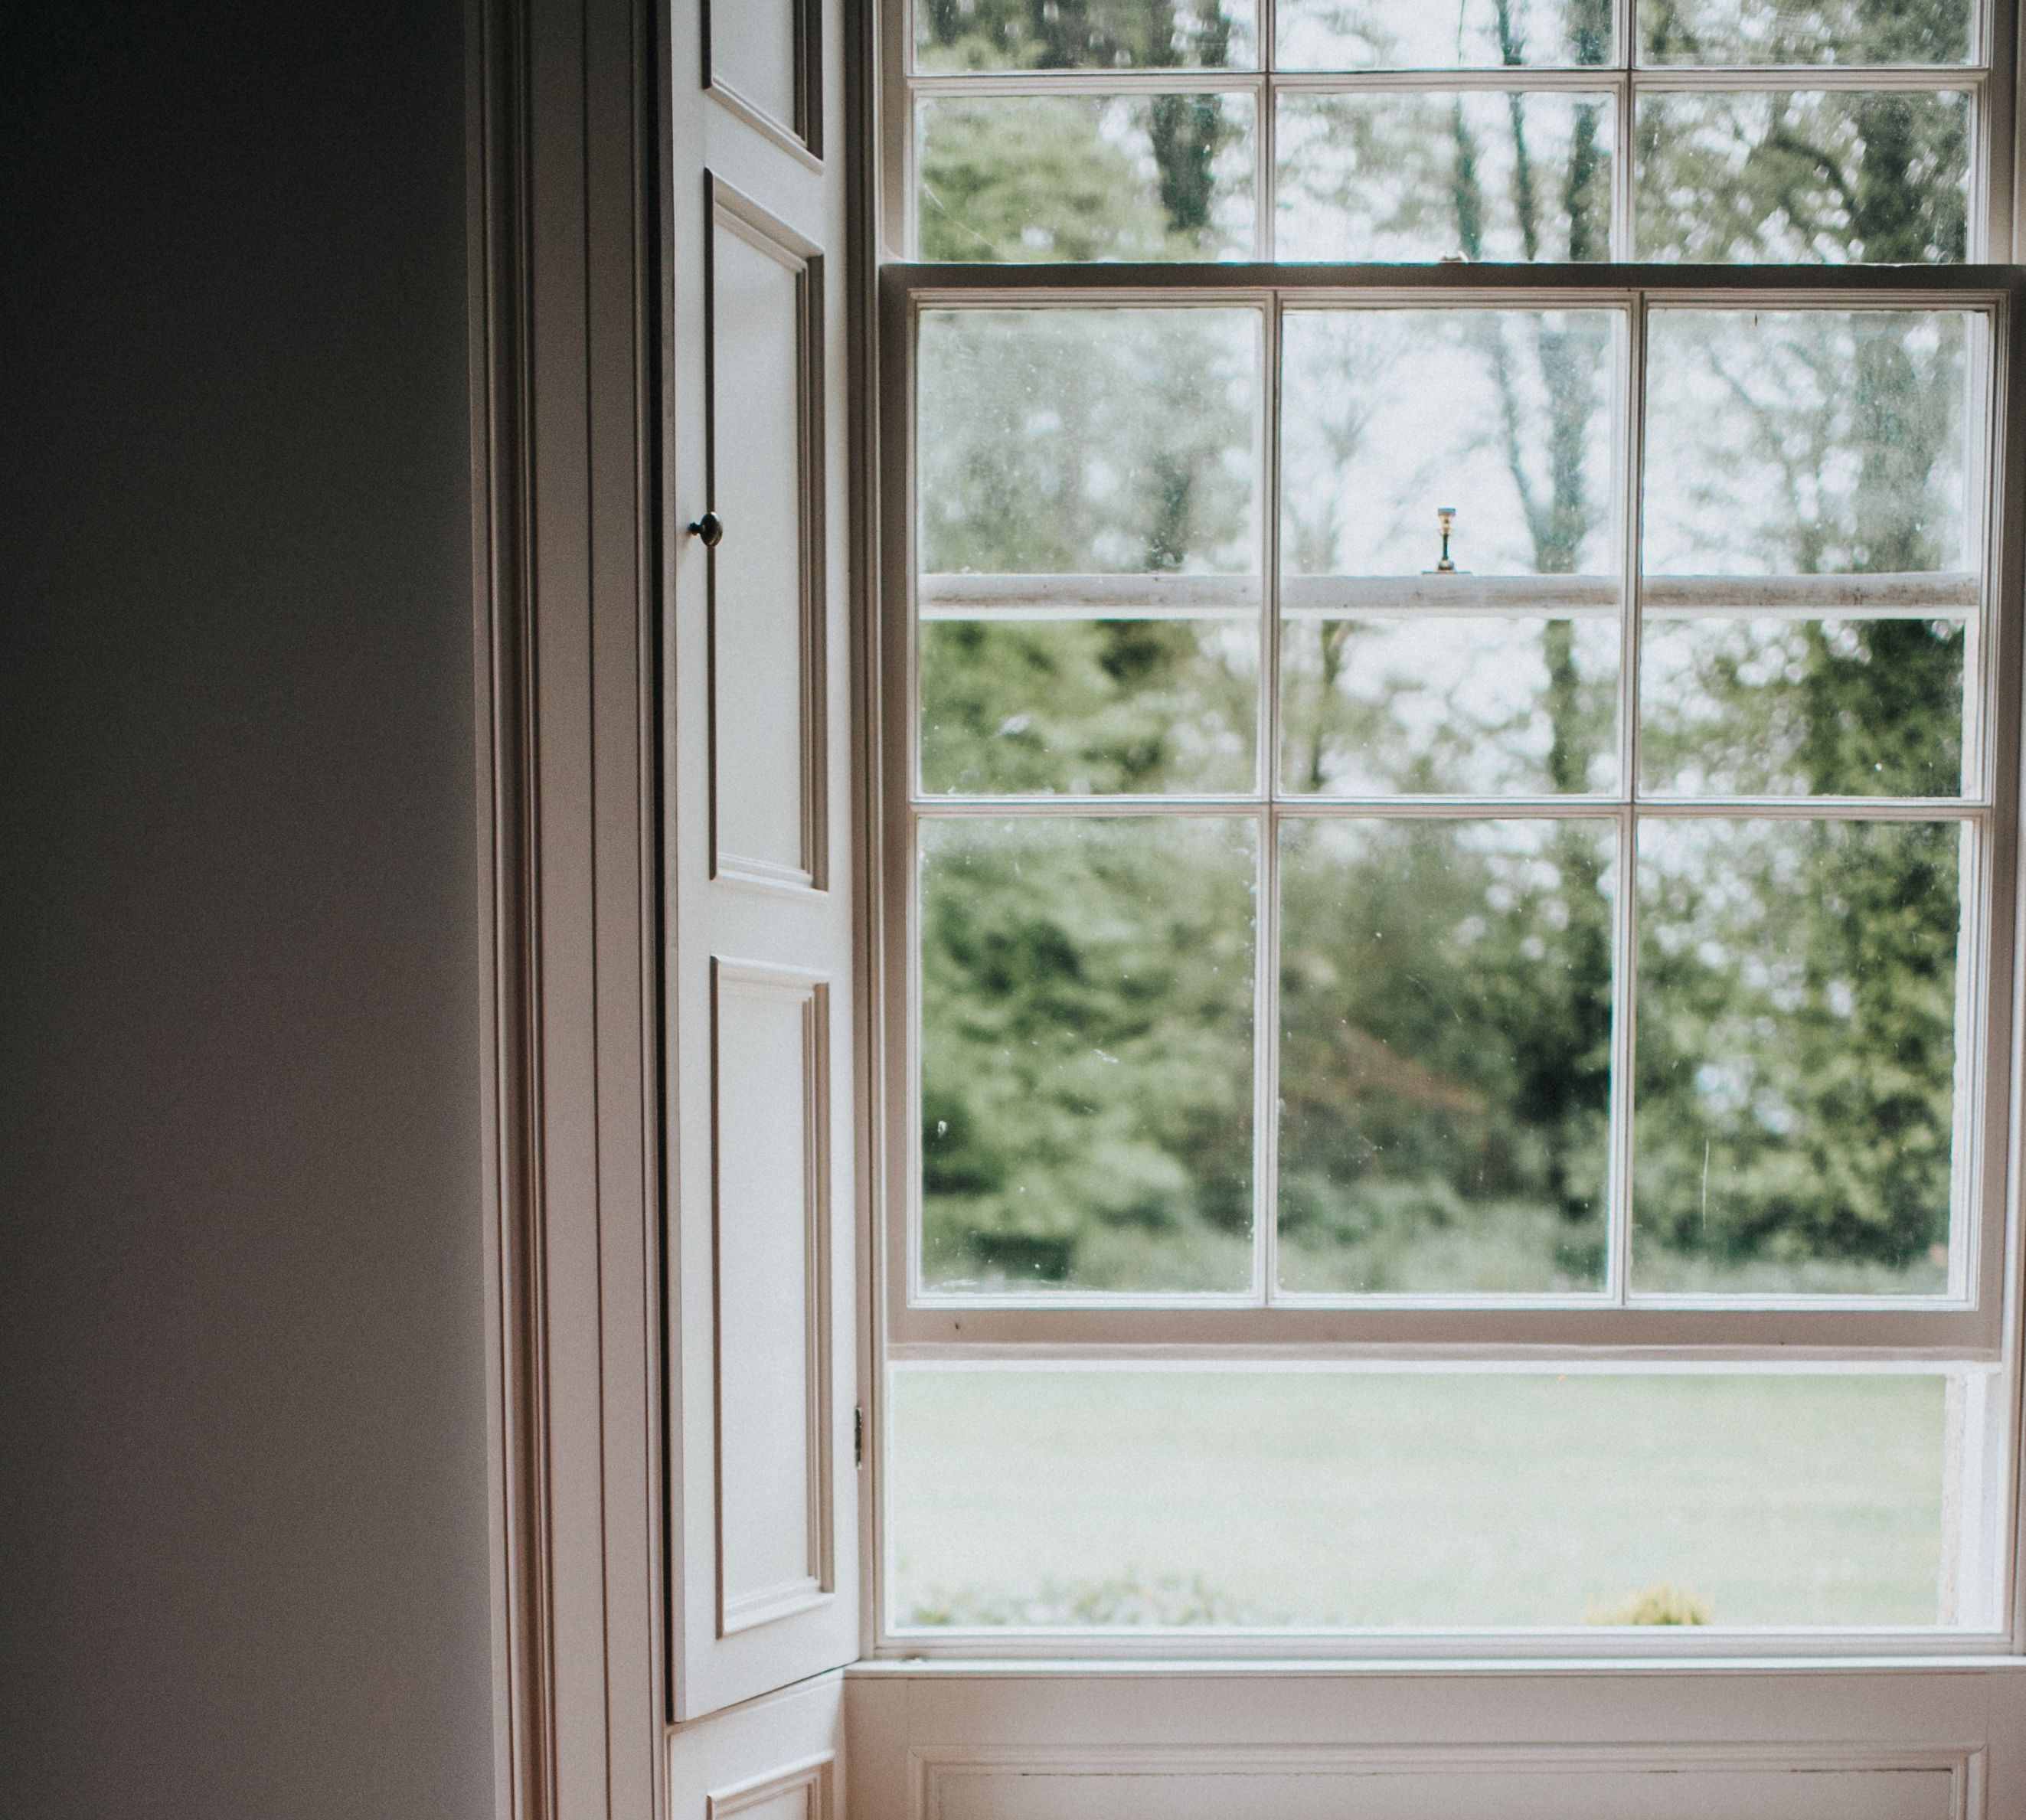 How Much Does A Window Replacement Cost In 2020 Andersen Patio Doors Windows With Blinds Sliding Patio Doors